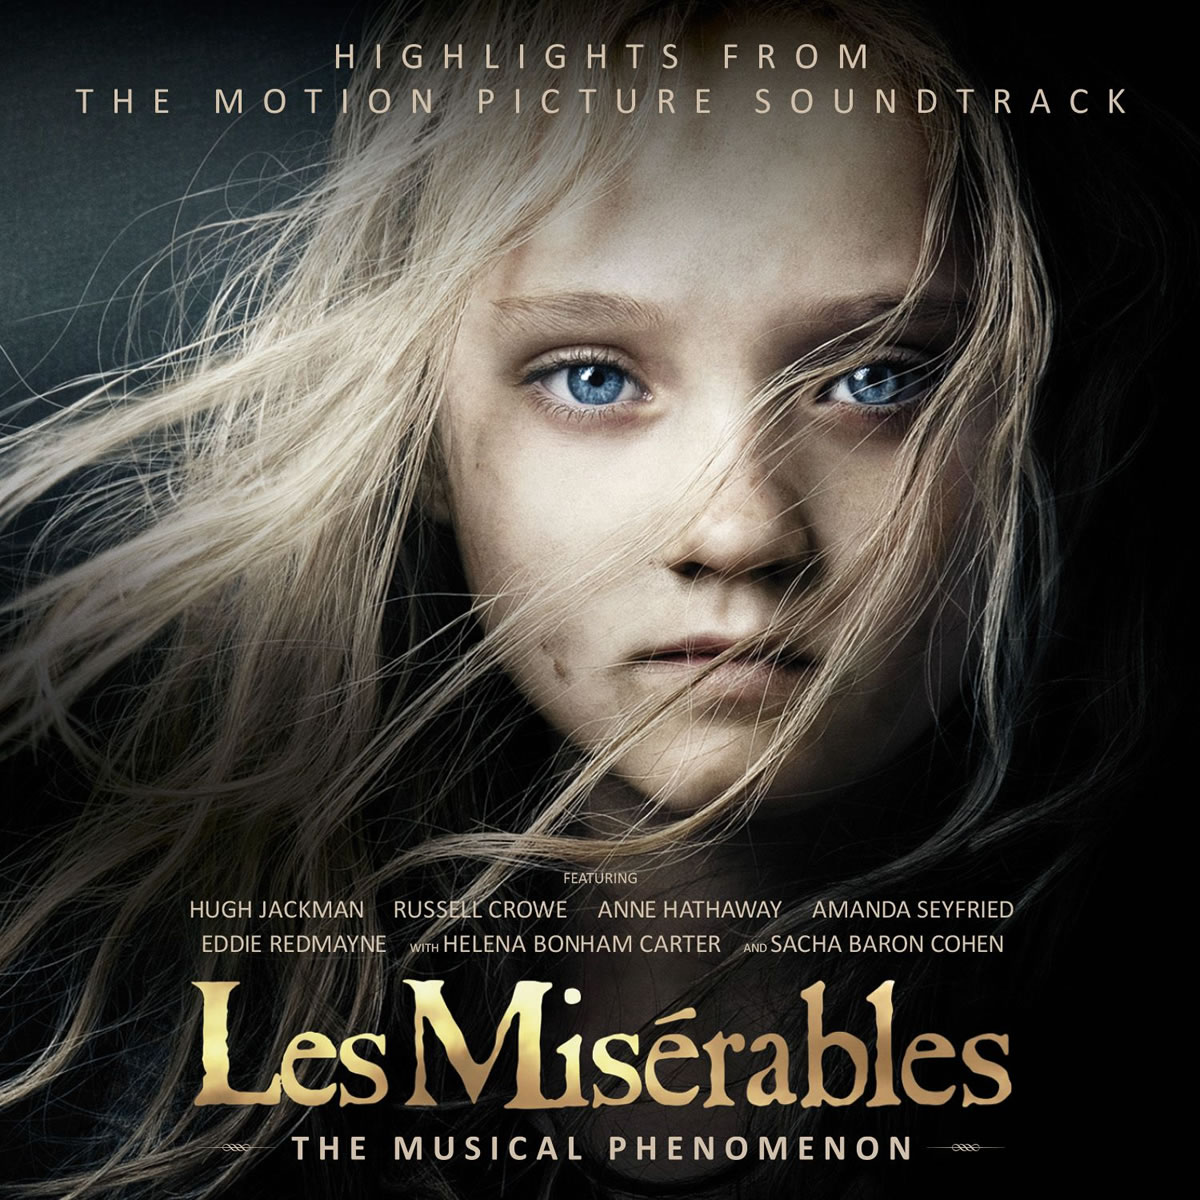 LES MISERABLES - HIGHLIGHTS FROM THE MOTION PICTURE SOUNDTRACK (AUDIO CD)